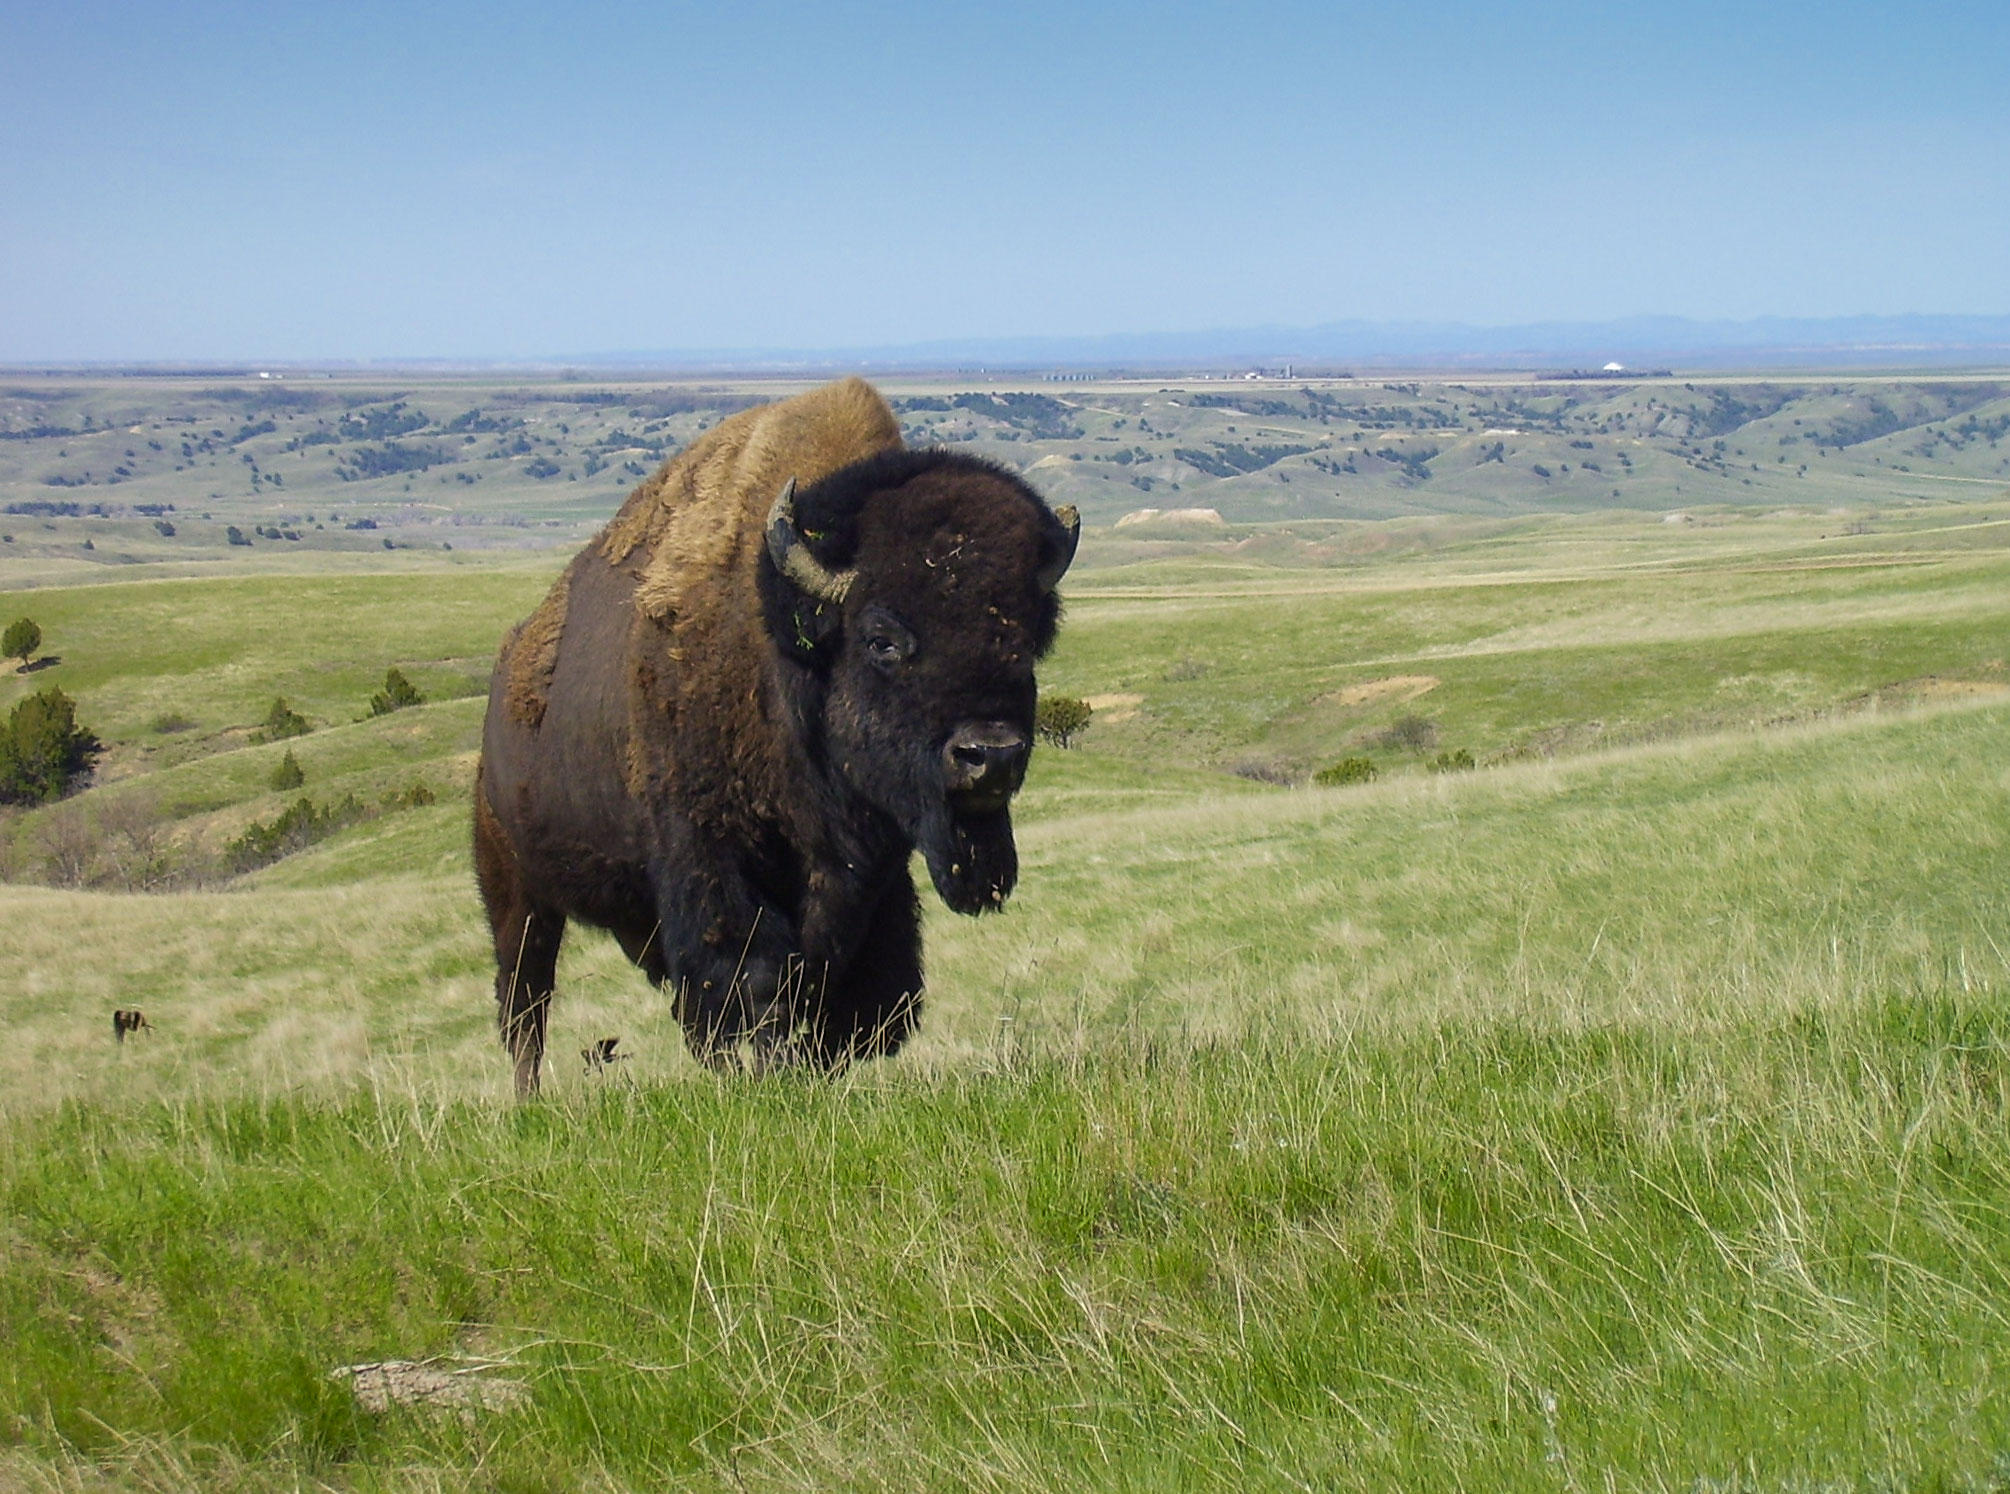 http://upload.wikimedia.org/wikipedia/commons/7/77/Bison_Badlands_South_Dakota.jpg